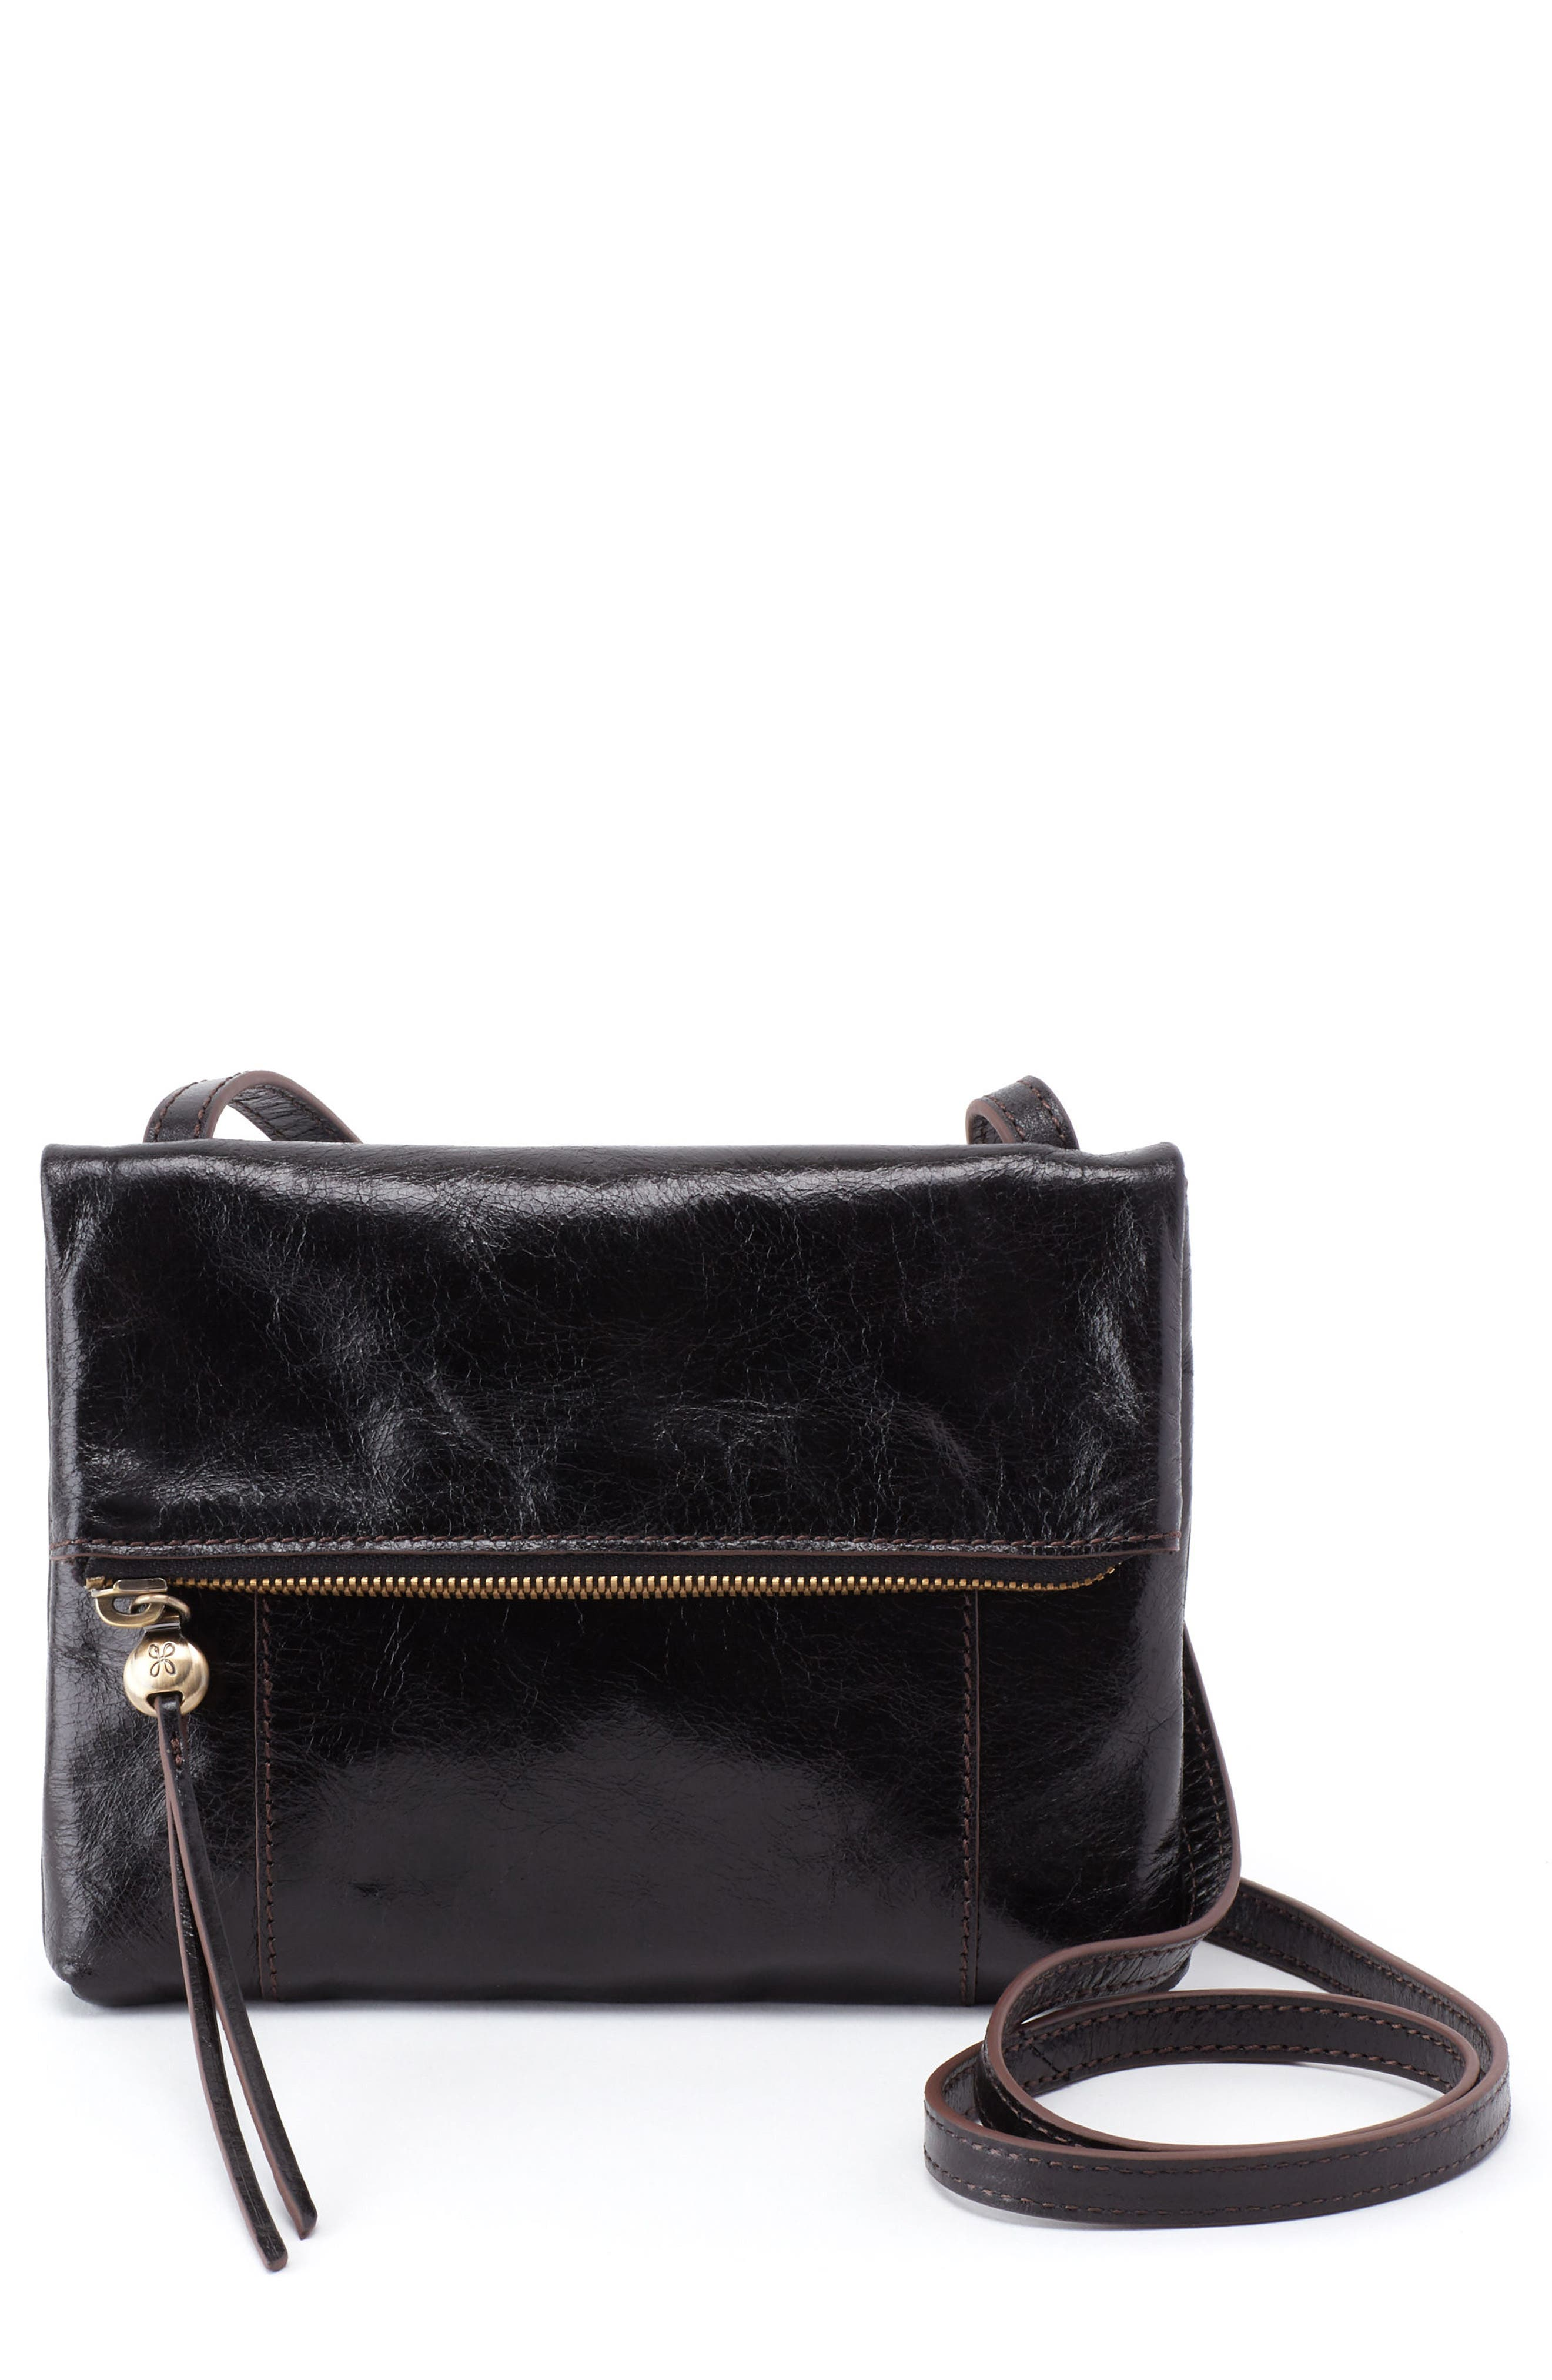 Sparrow Foldover Crossbody Bag,                             Main thumbnail 1, color,                             BLACK